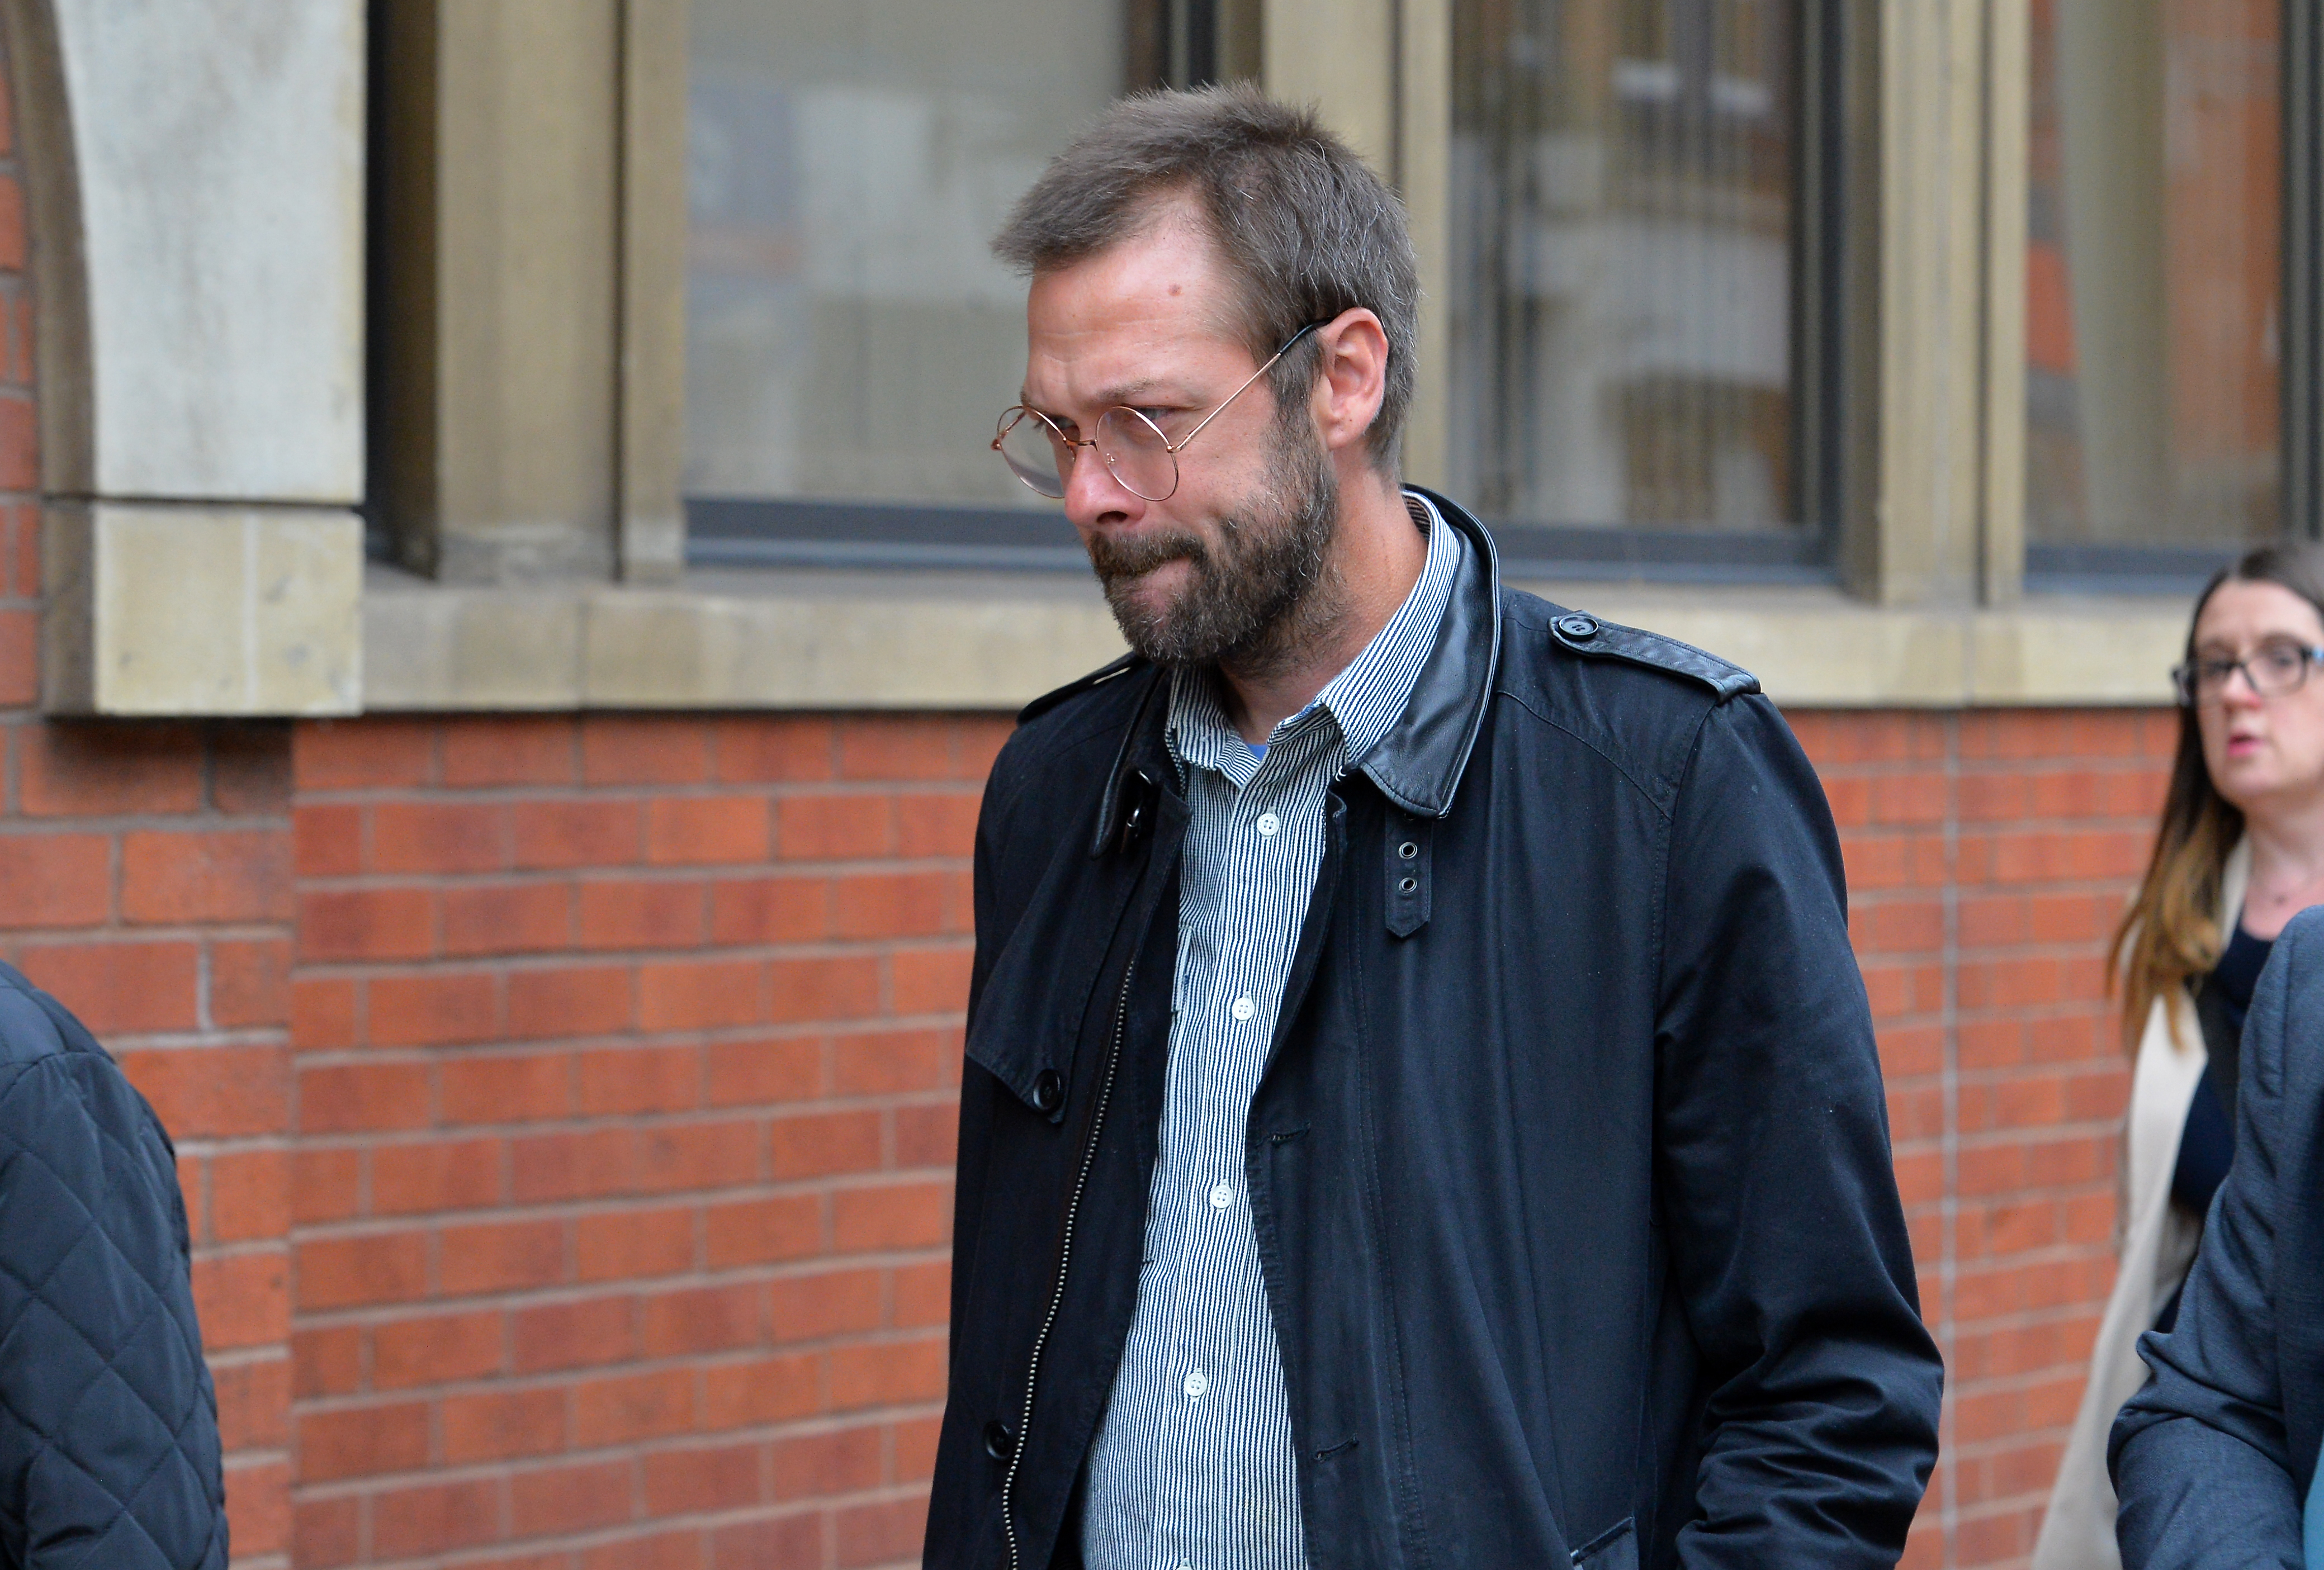 Tom Meighan court case